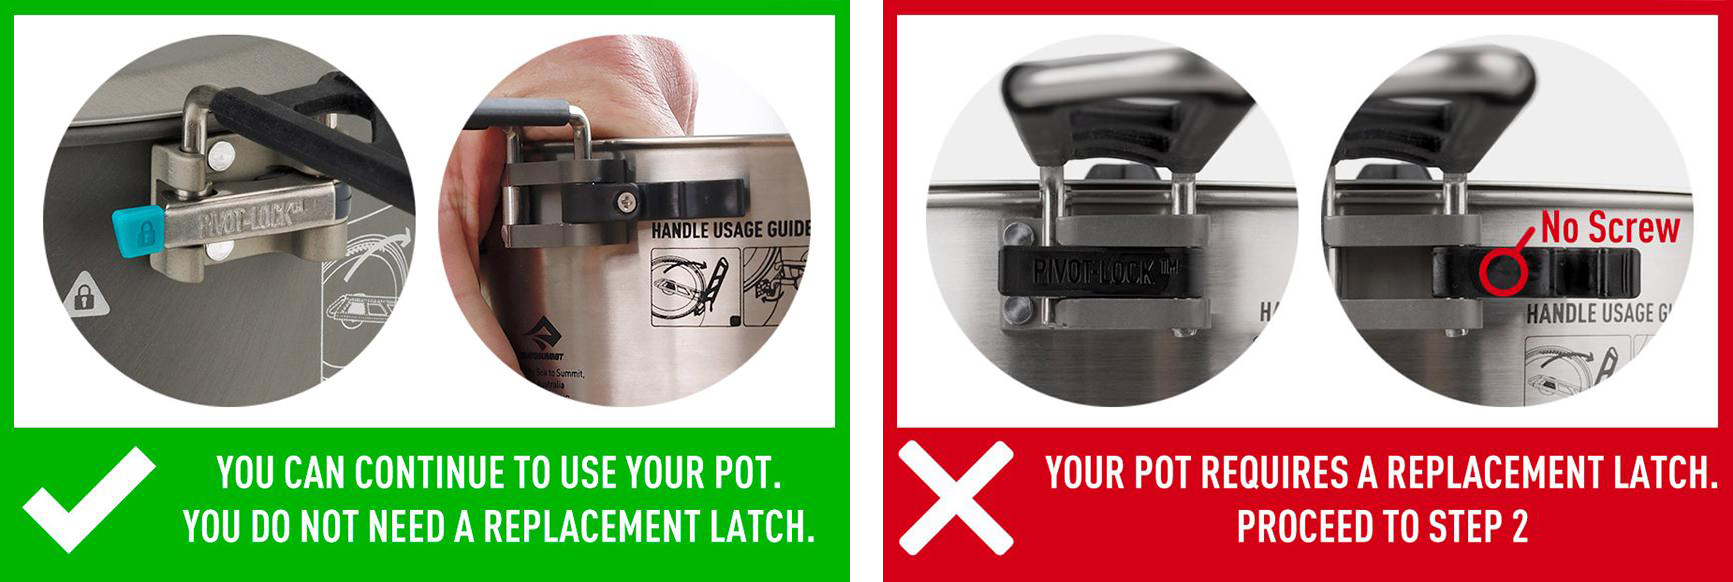 Sea to Summit cook pot latch recall